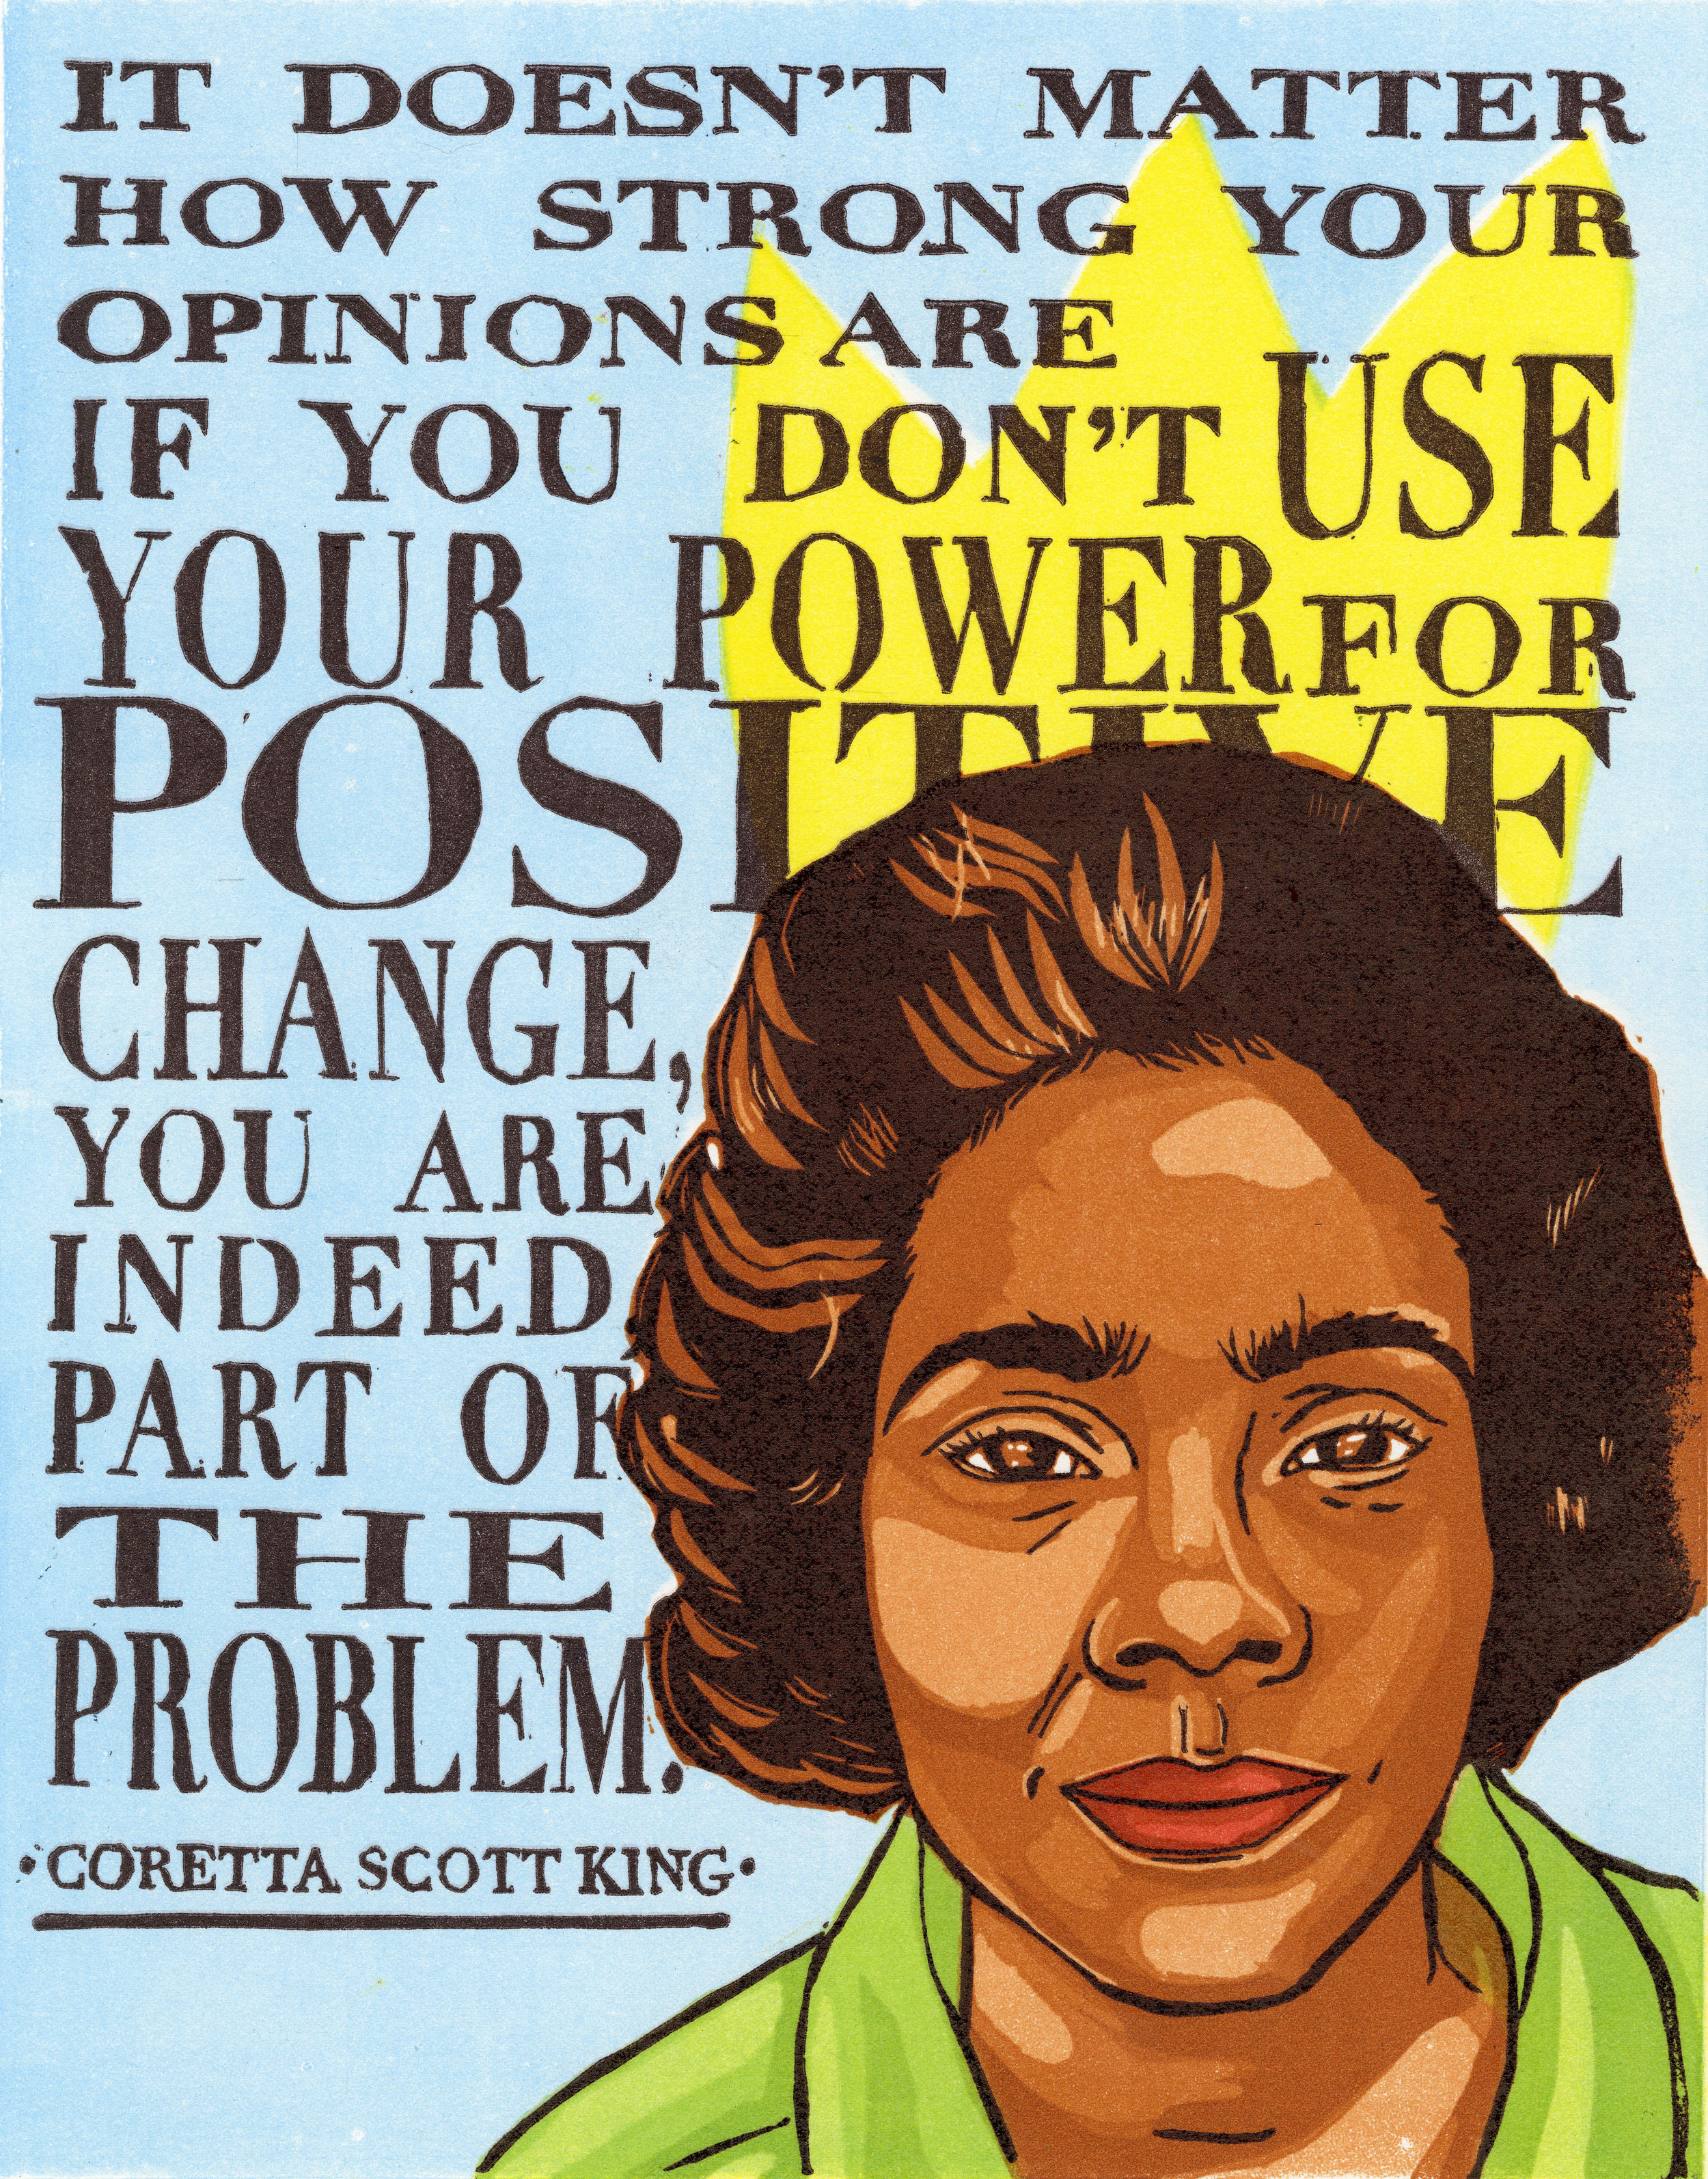 CORETTA , 2018  Prominent American author, activist, and civil rights leader, Coretta Scott King left a mark on the world. A leader in the fight for equality amongst people of color, the LGBT+ community, and women's rights she is a true American hero.